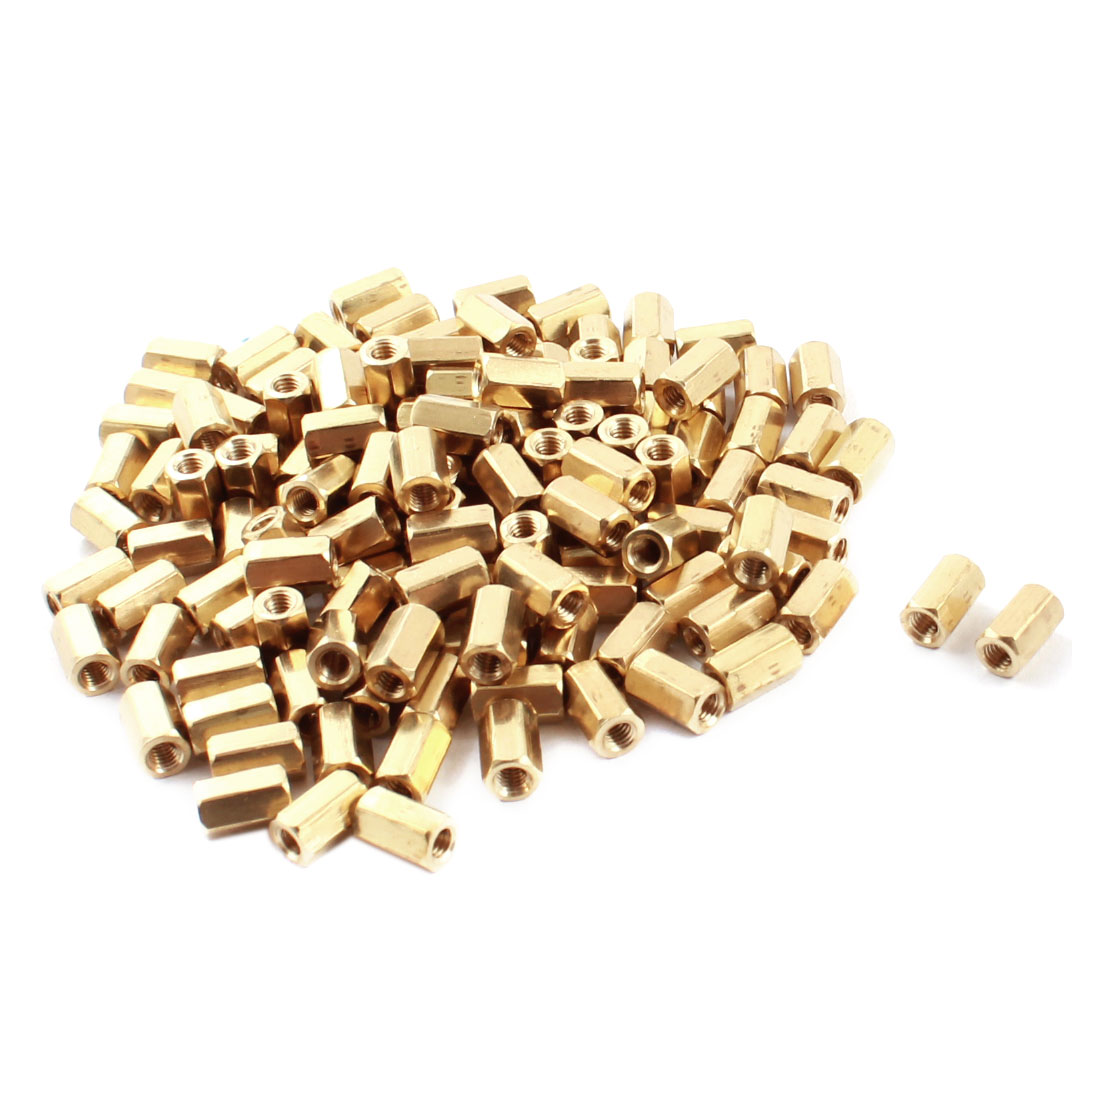 130 Pcs M3 x 8mm Female Thread Hex Head Dual Ends Gold Tone Brass Pillar Standoff Hexagonal Nut Spacer